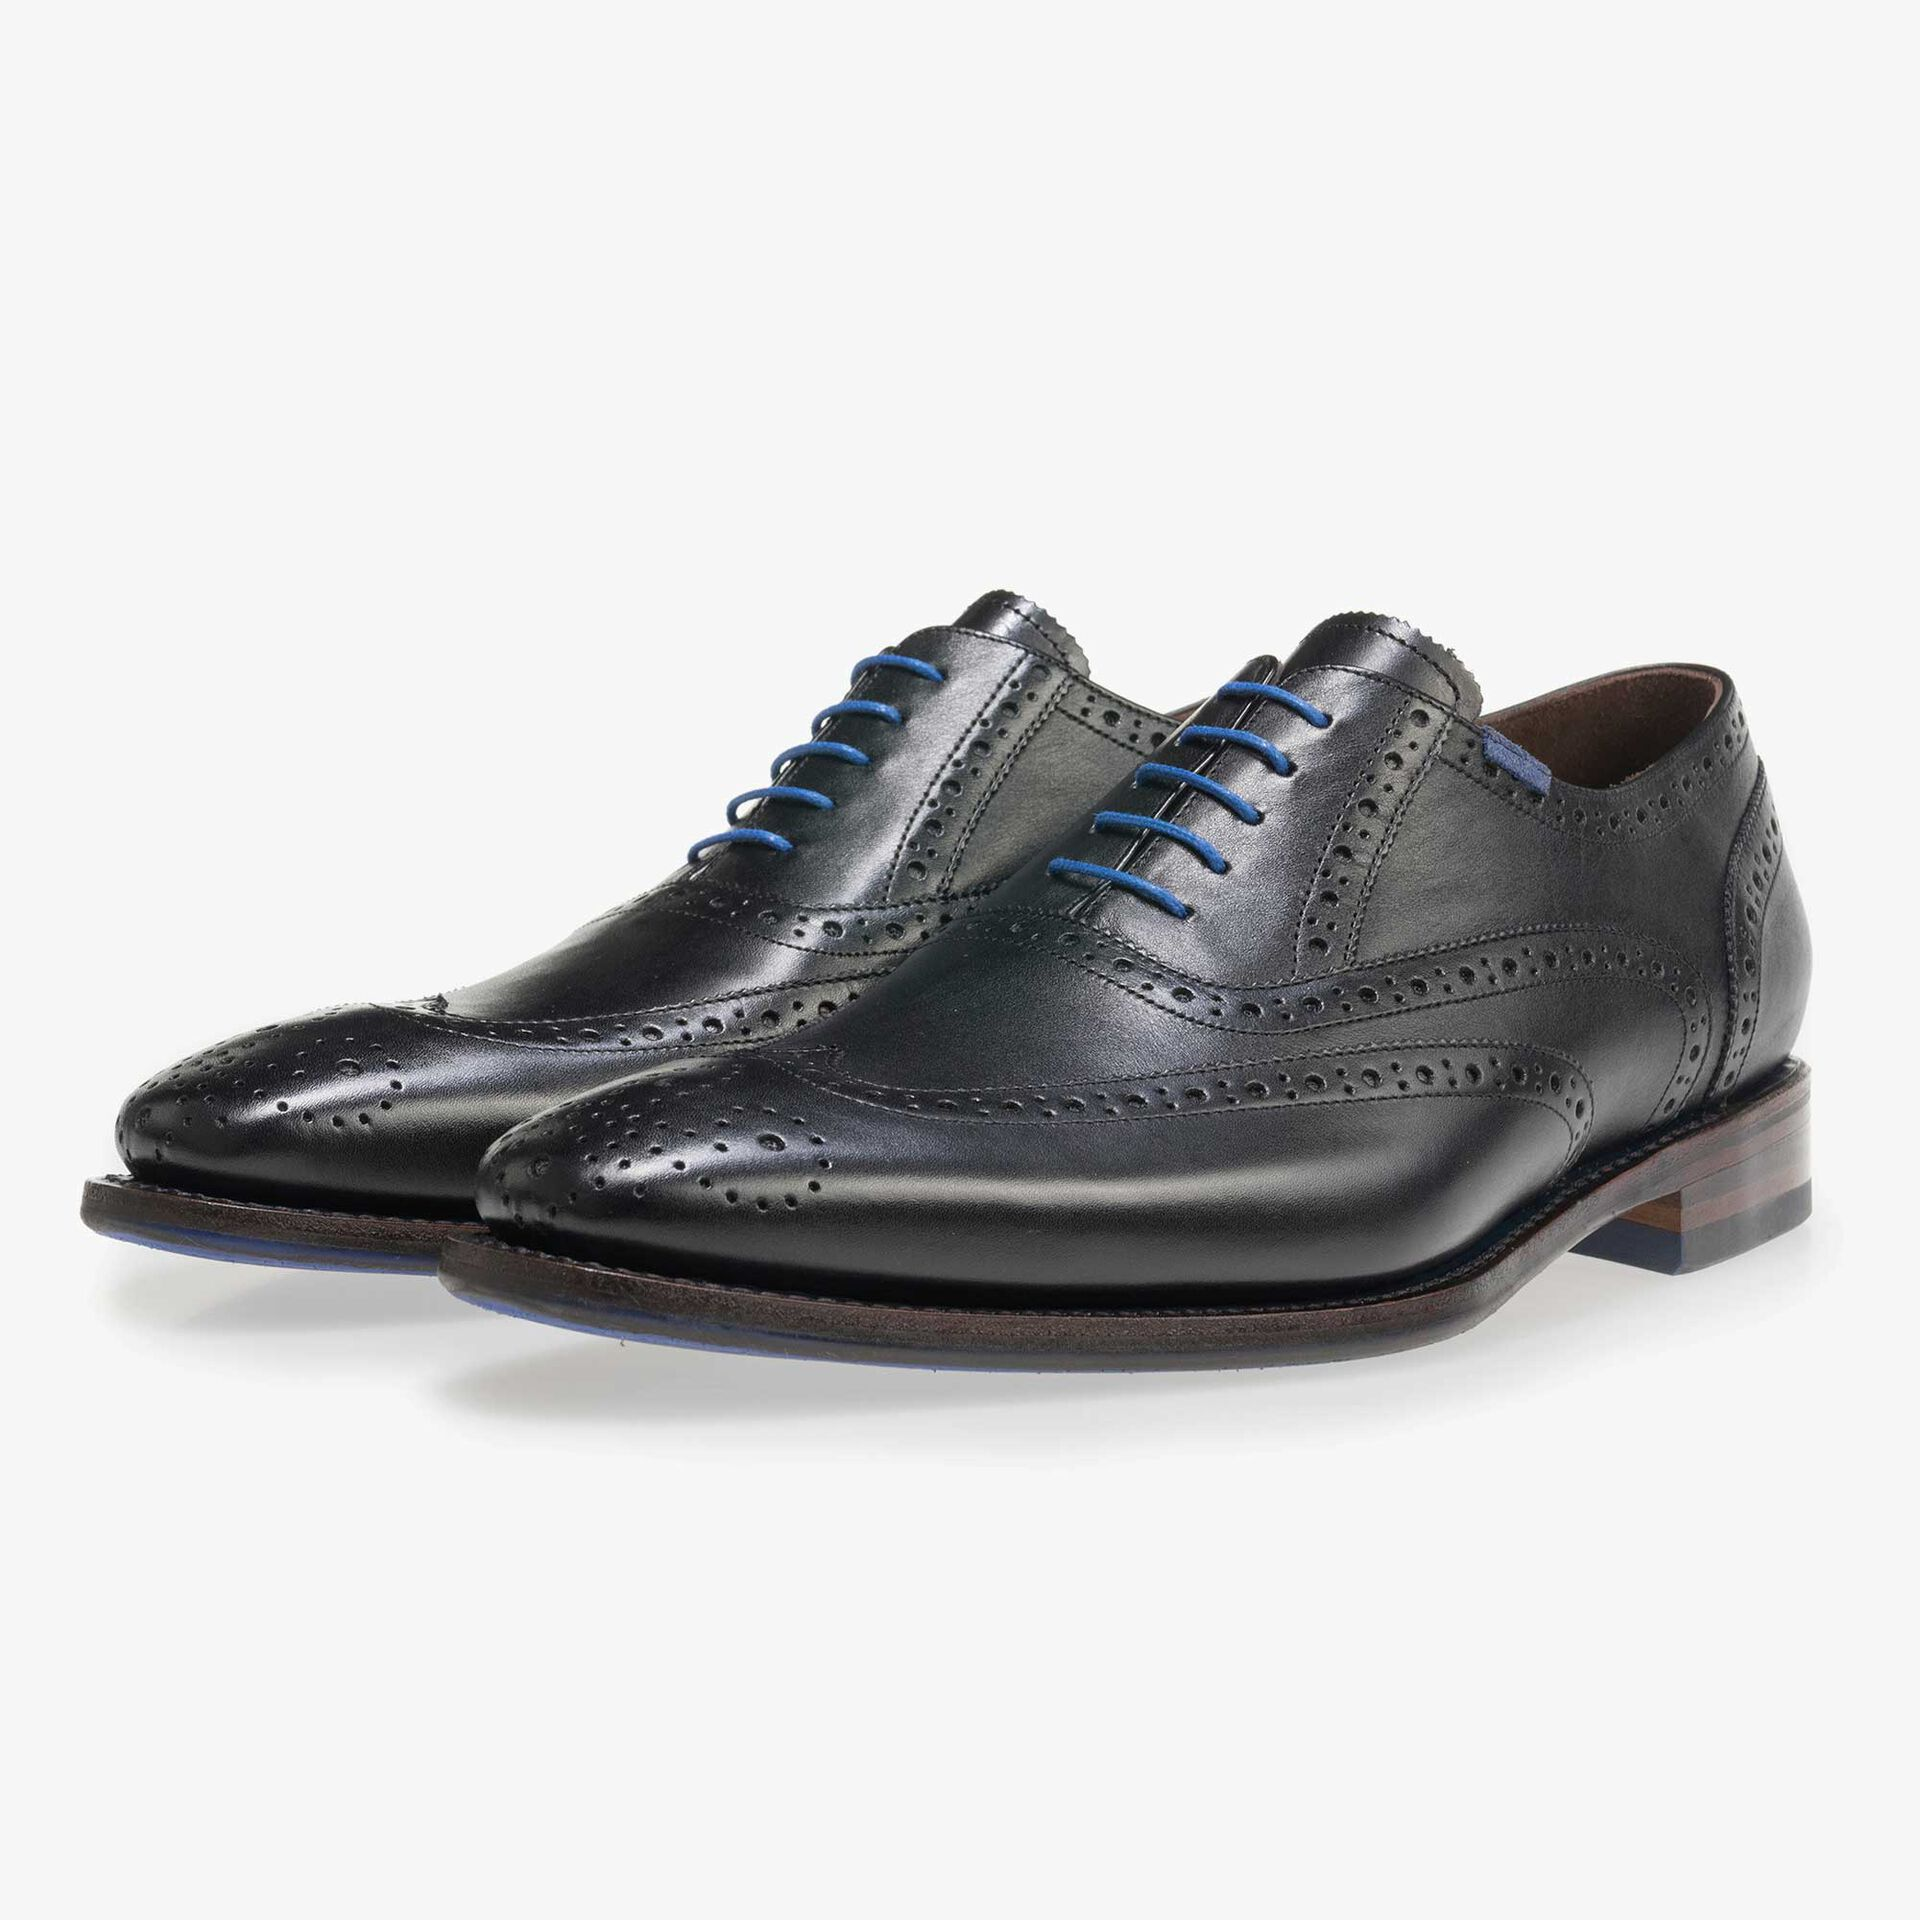 Black brogue calf's leather lace shoe